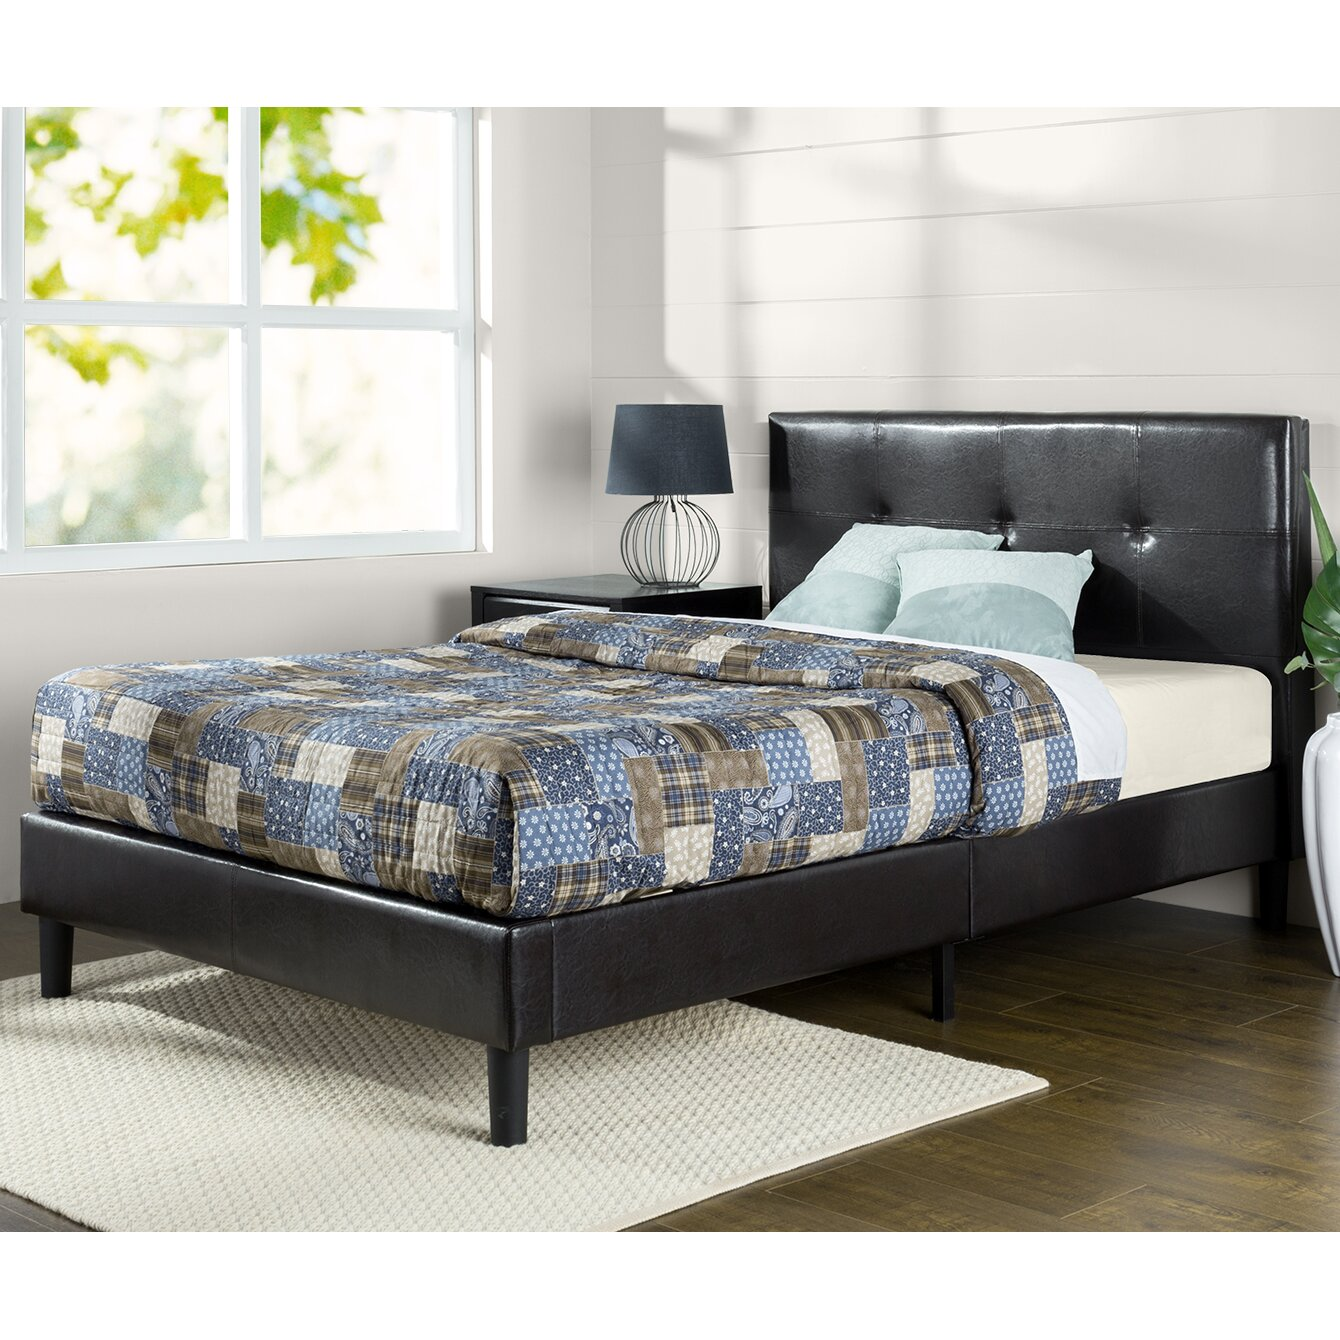 Zinus Classic Platform Bed Zinus Classic Platform Bed Wayfair Zinus Brown Fabric  Beds Between Sleeps. Poster Zinus Grey Beds   cpgworkflow com